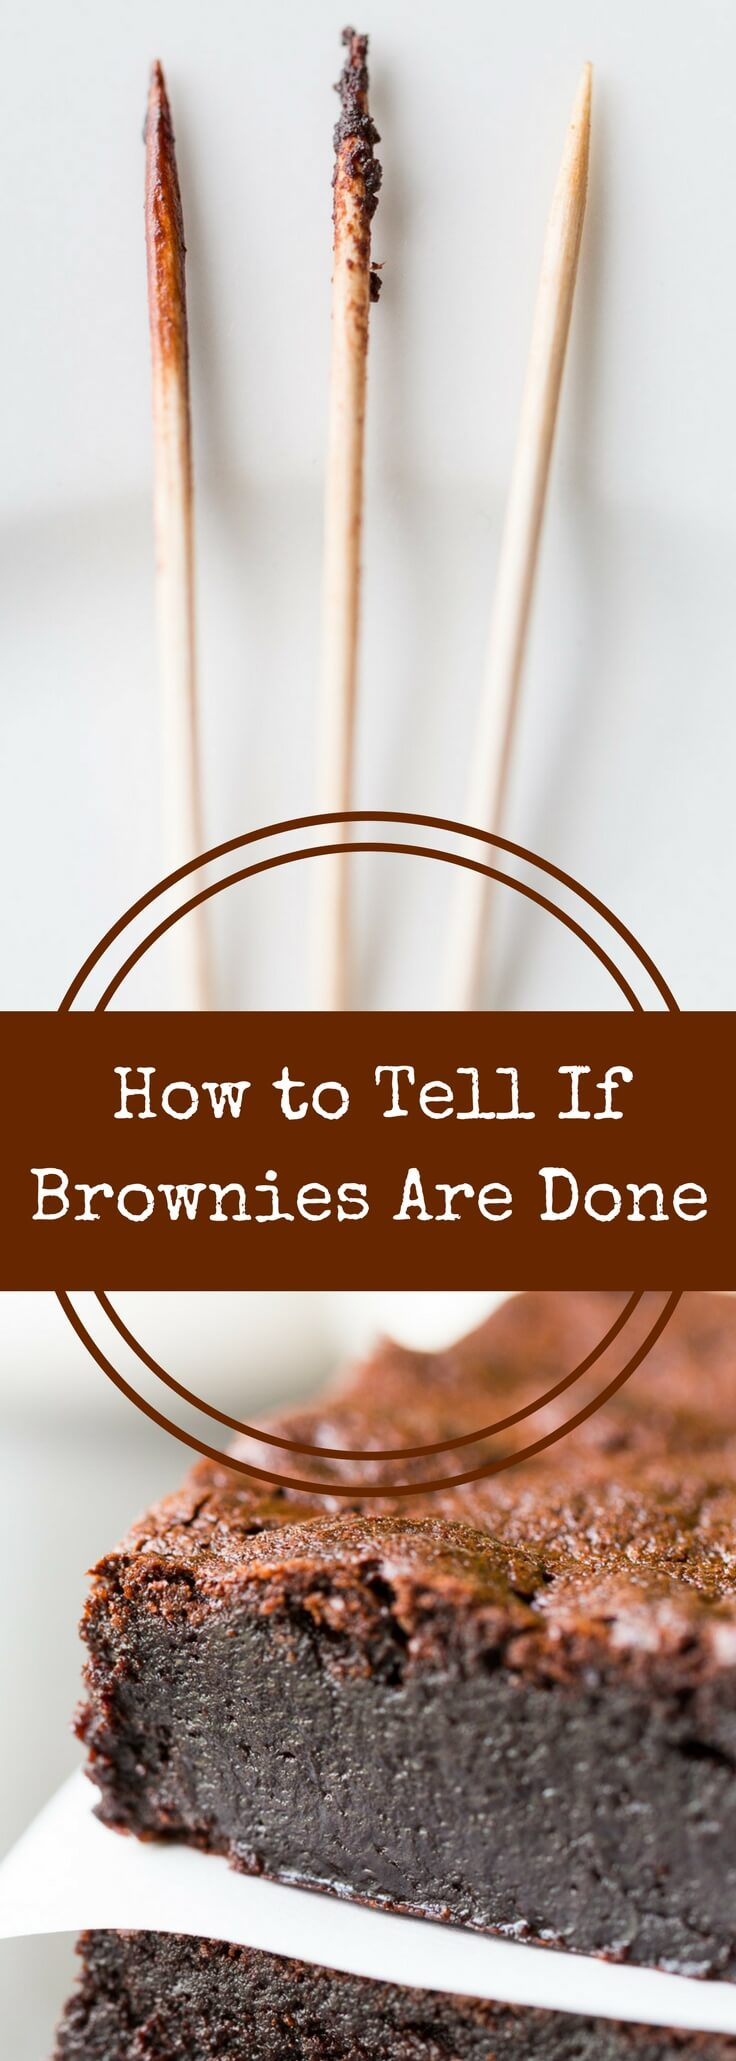 How do you know when brownies are done? This handy guide will help you know exactly when your brownies are ready to come out of the oven!